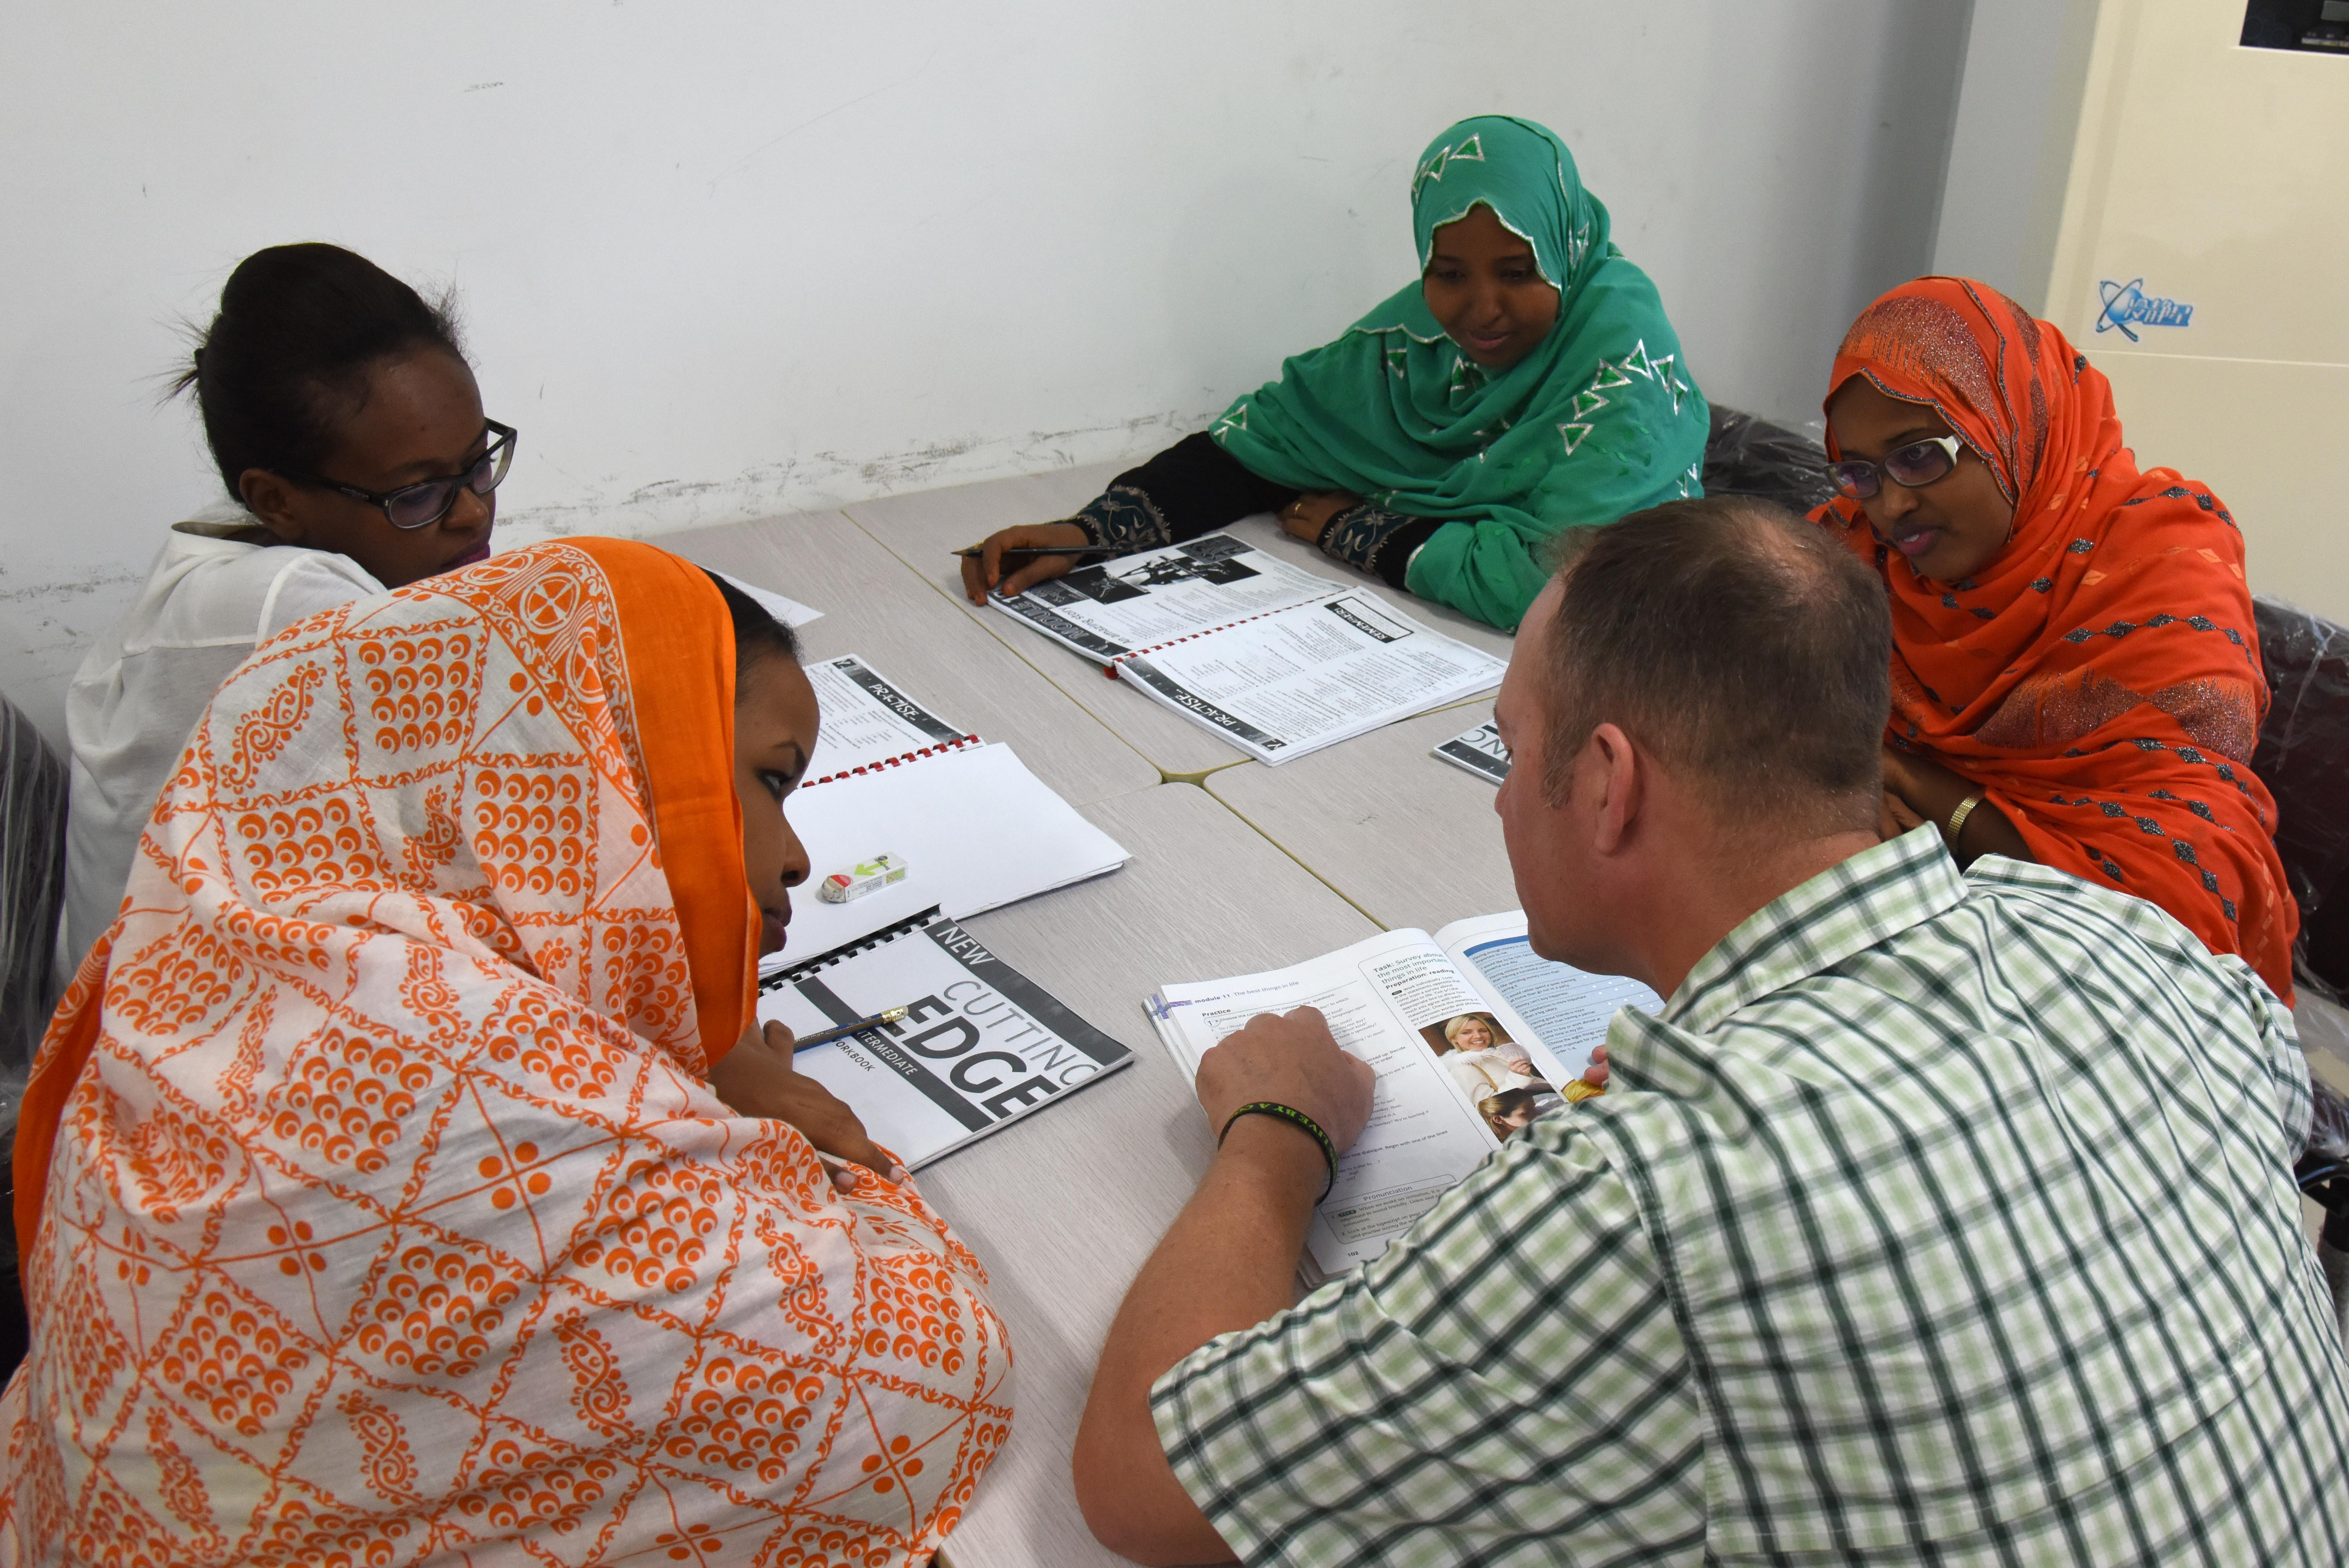 U.S. Army Capt. Tommy Stephens, 403rd Civil Affairs Battalion team chief, answers Djiboutian students' questions during an English discussion group at the Diplomatic Institute in Djibouti, Jan. 12, 2016. Civil affairs members attend group discussions to help intermediate and advanced English students practice speaking with native speakers. (U.S. Air Force Staff Sgt. Victoria Sneed)